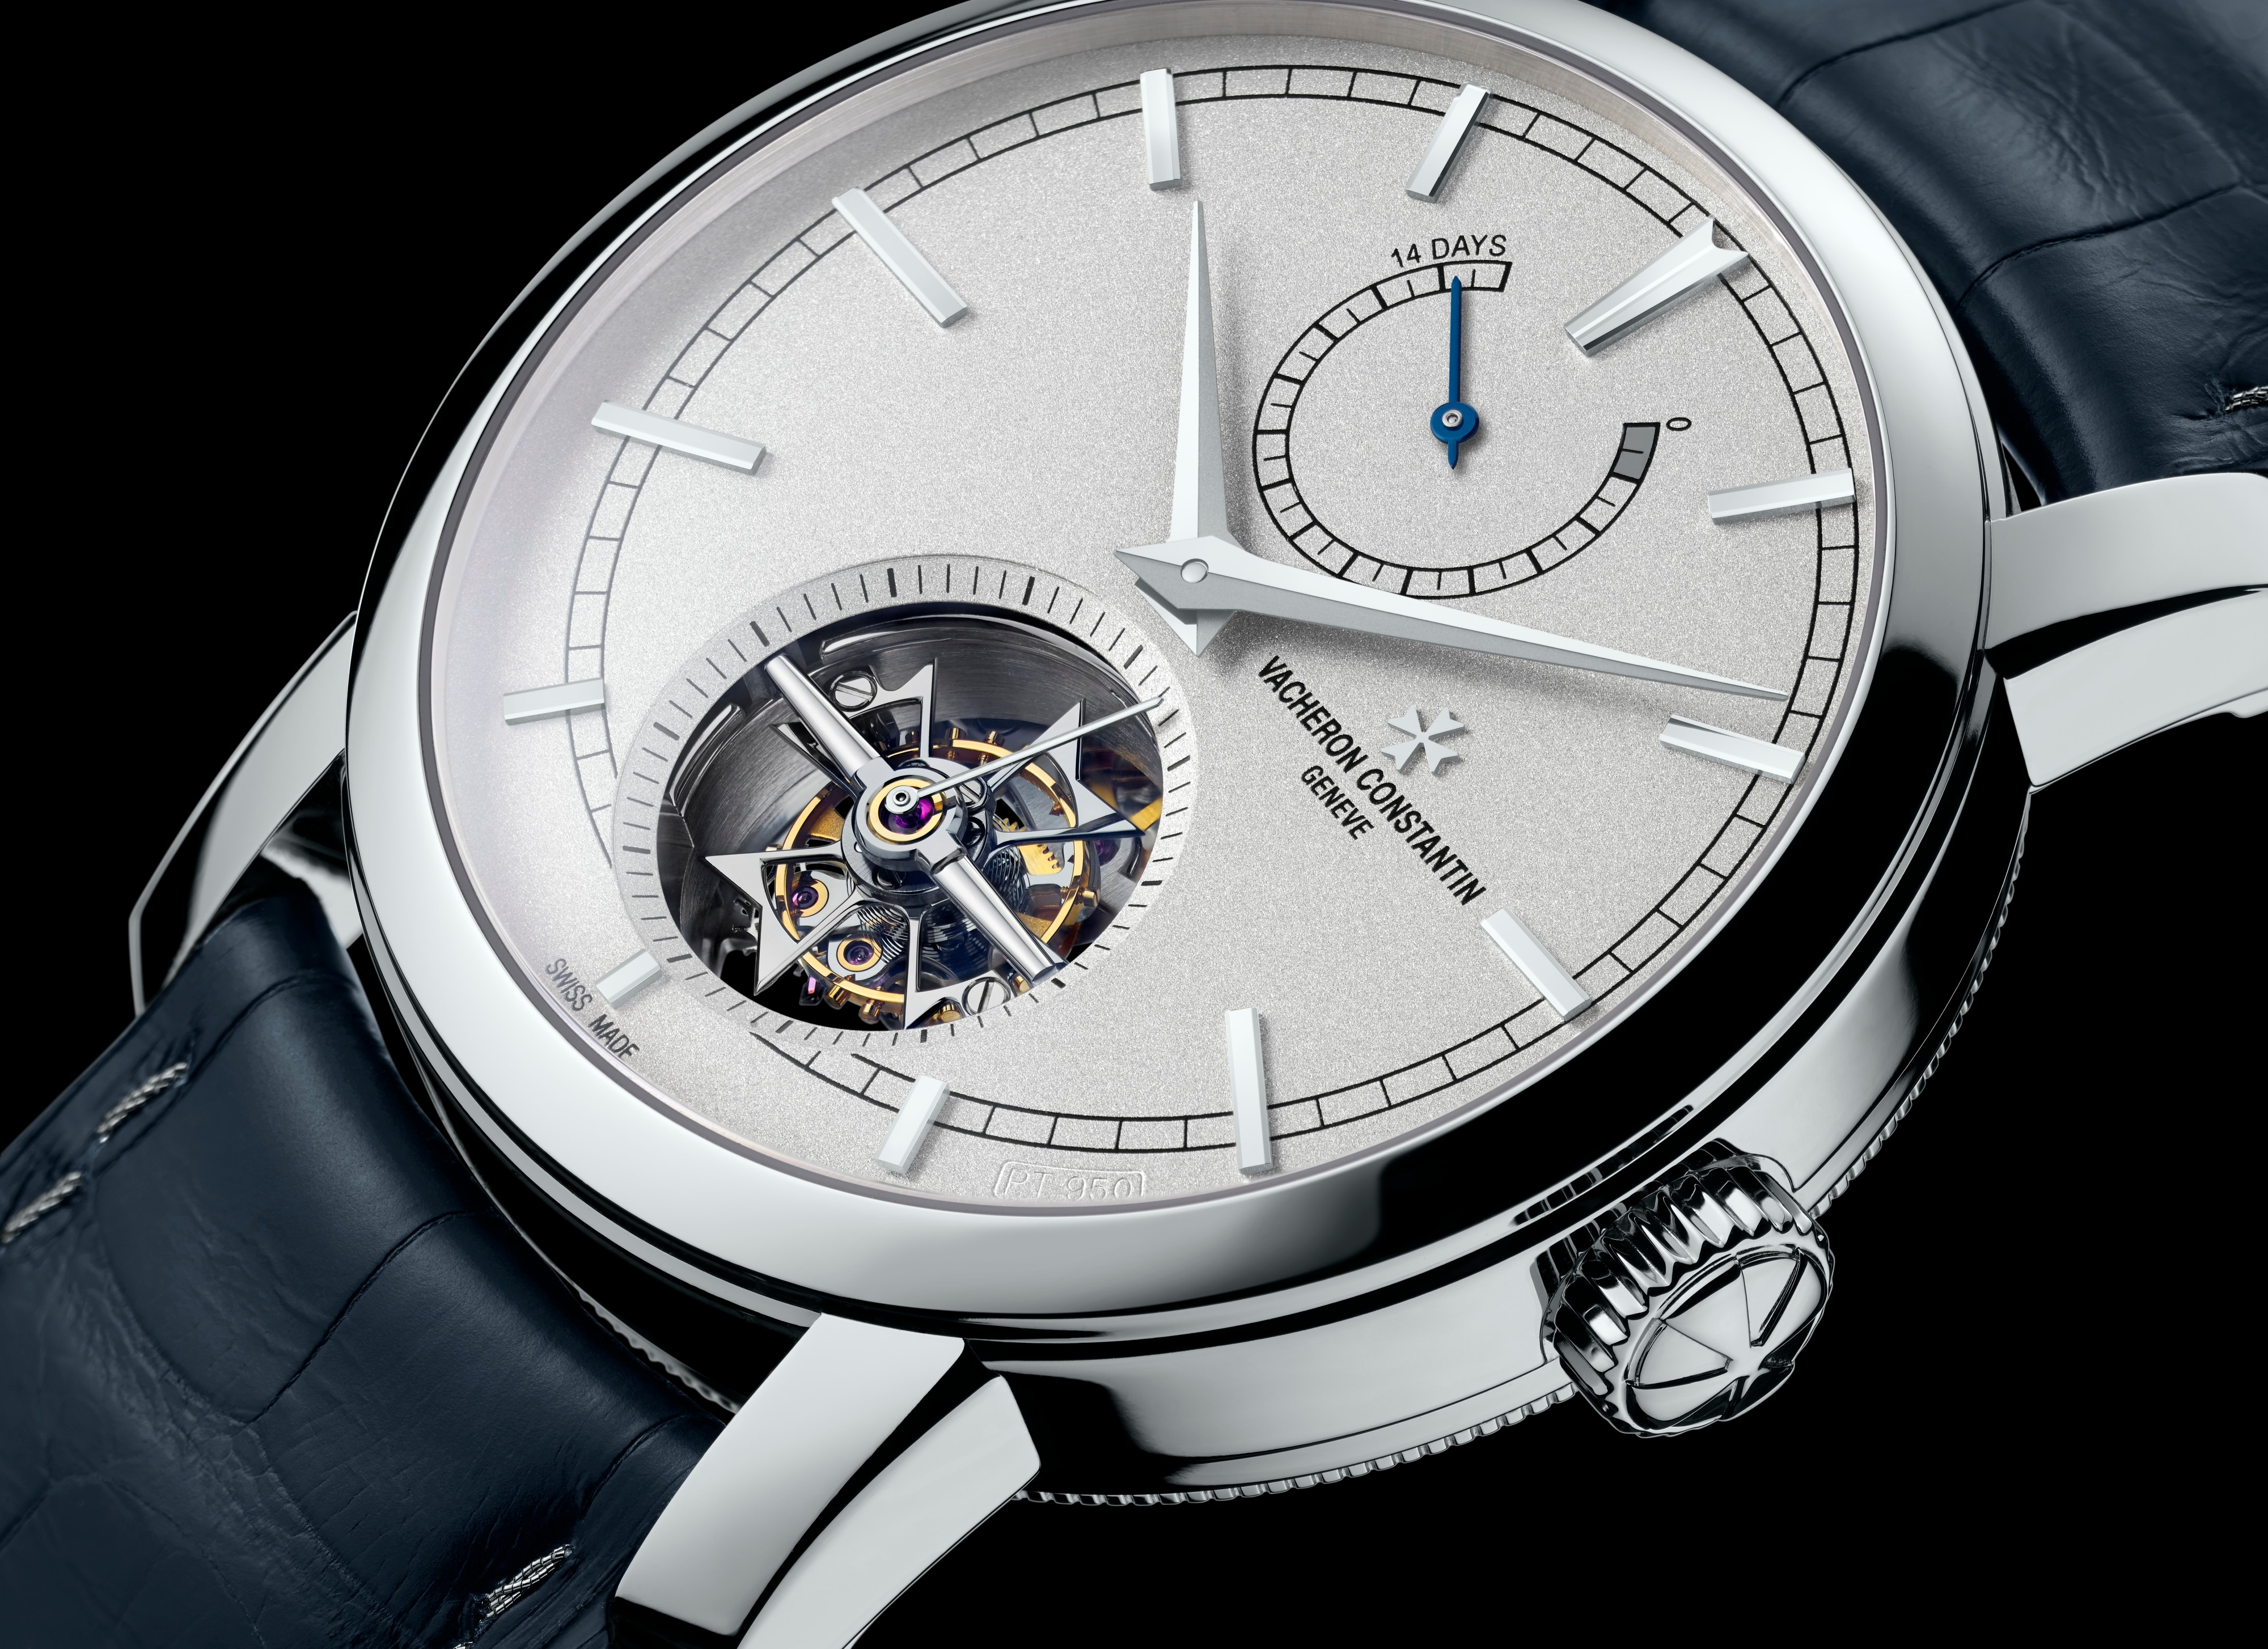 vacheron_constantin_14_day_tourbillon_collection_excellence_platine-1